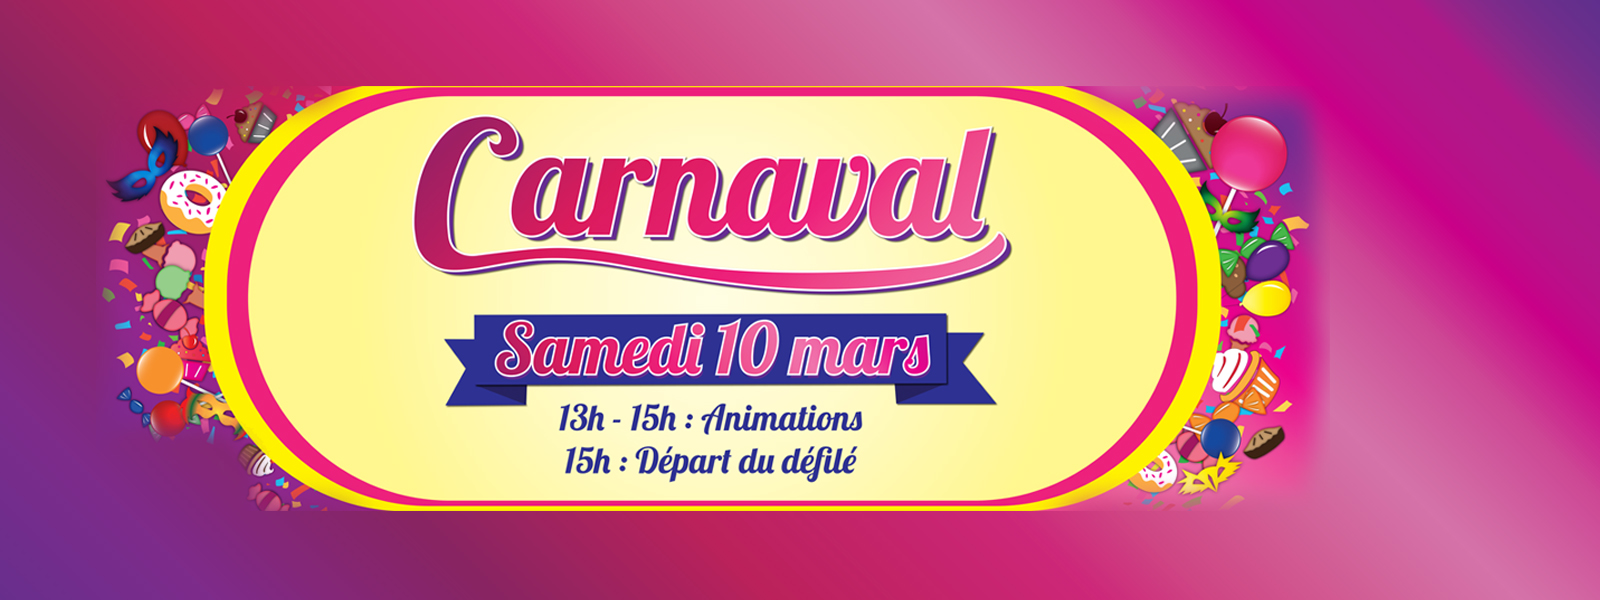 Carnaval au pays de la gourmandise site officiel de for Garage auto bussy saint georges